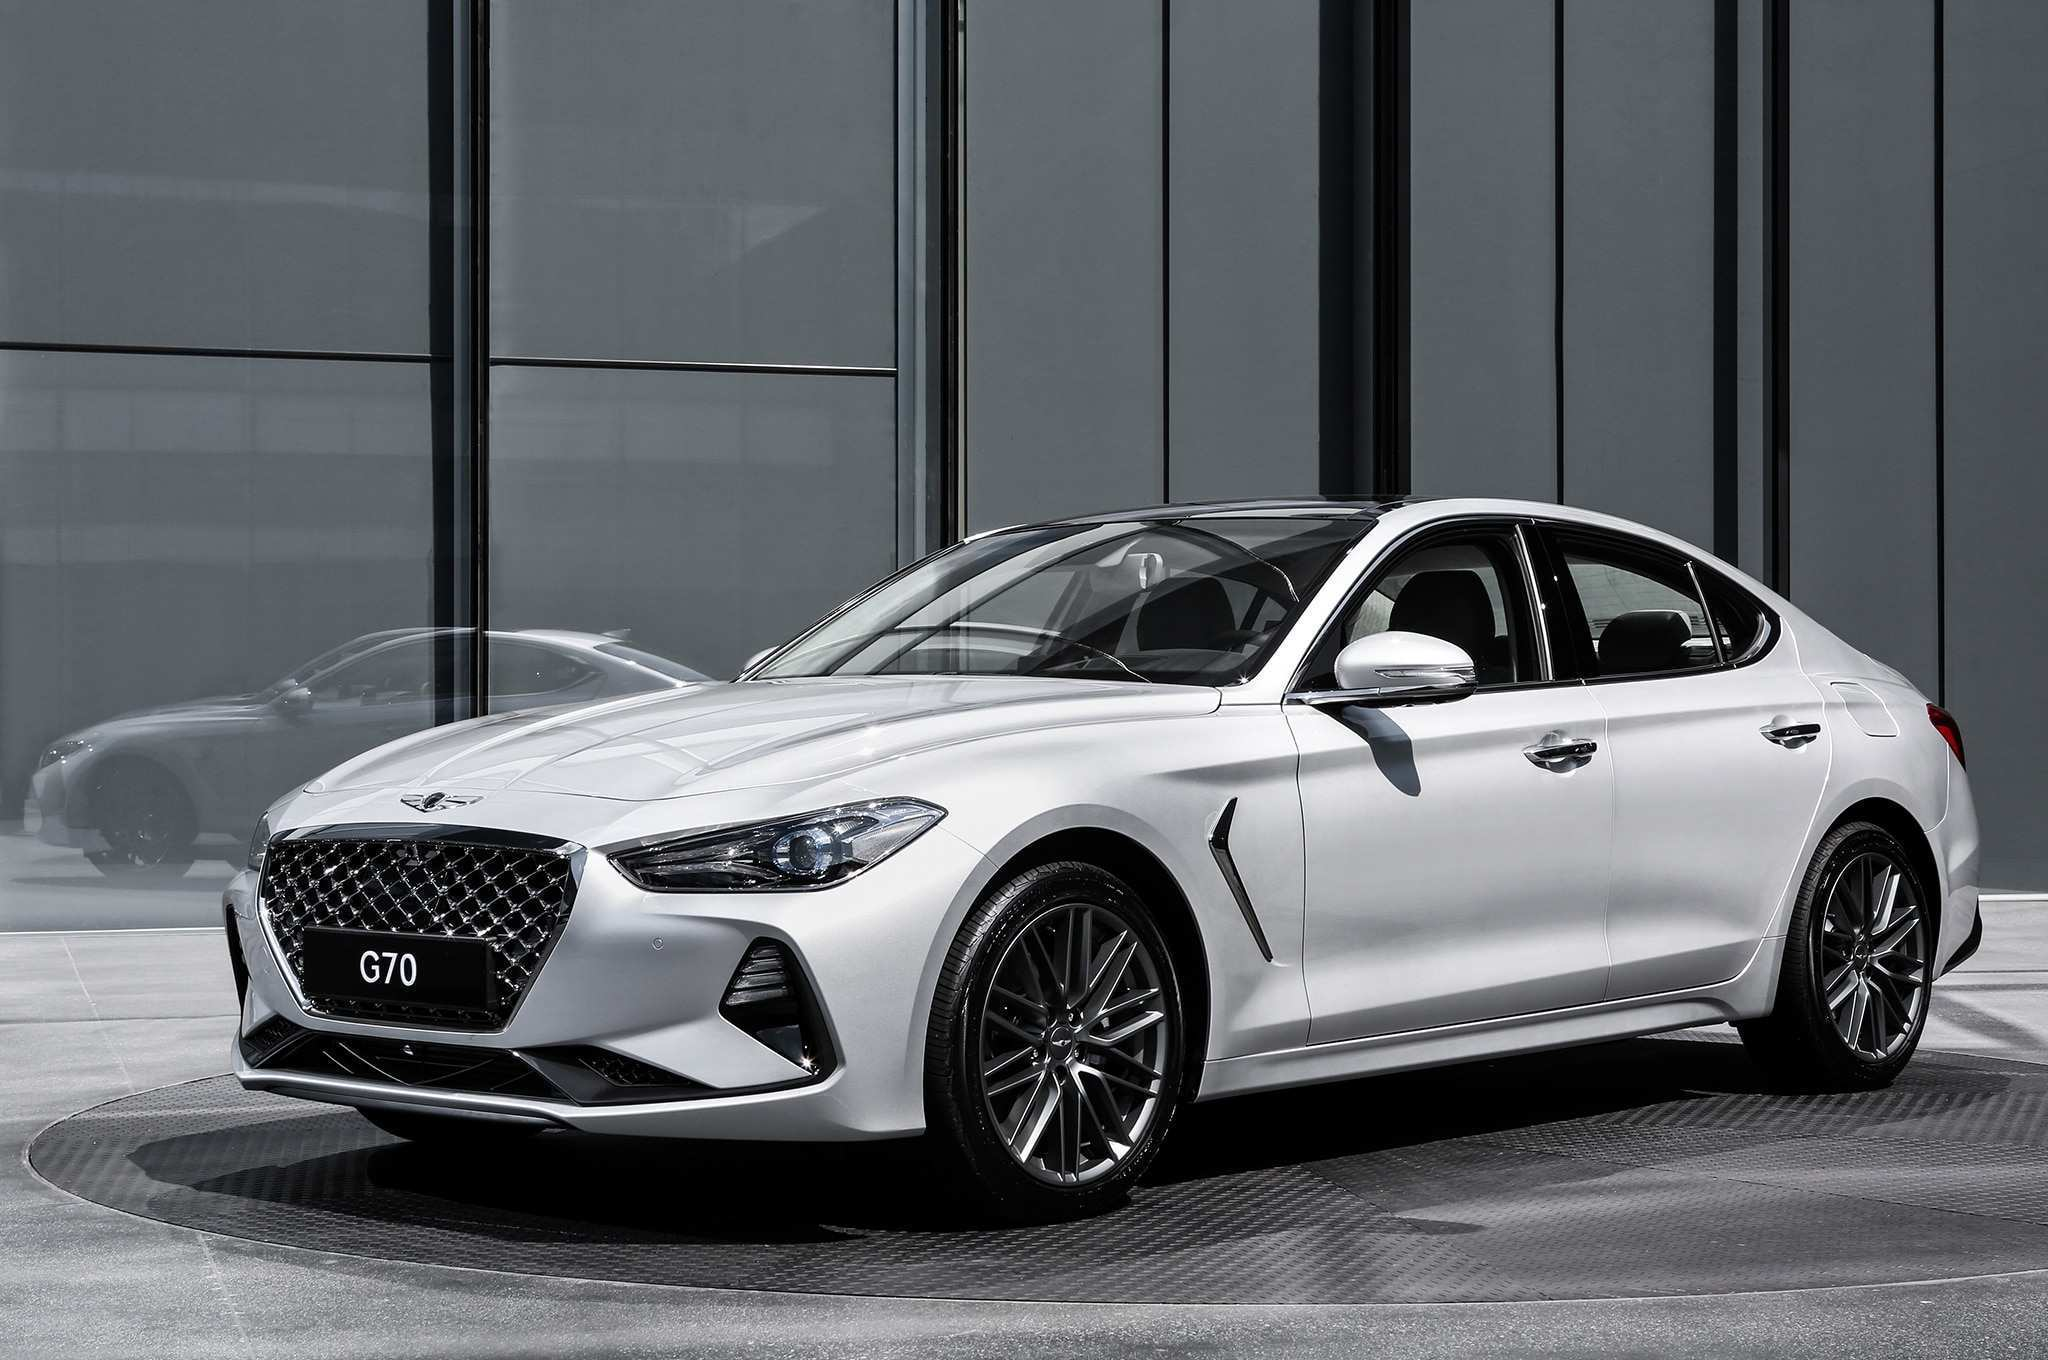 32 All New 2019 Genesis G70 Price Performance and New Engine with 2019 Genesis G70 Price